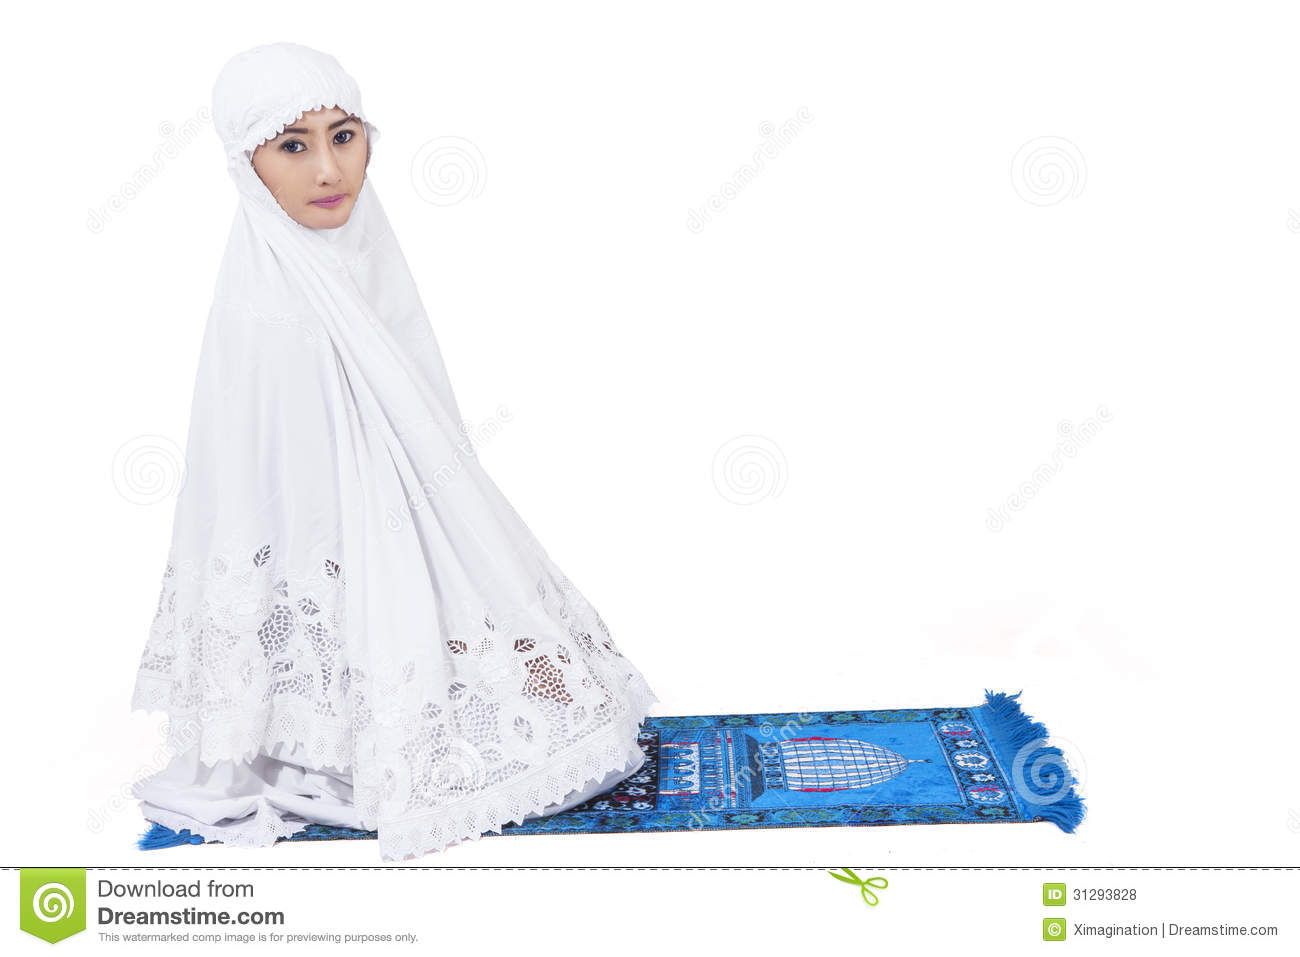 white muslim singles Meet single muslim british women for marriage and find your true love at muslimacom sign up today and browse profiles of single muslim british women for marriage for free.